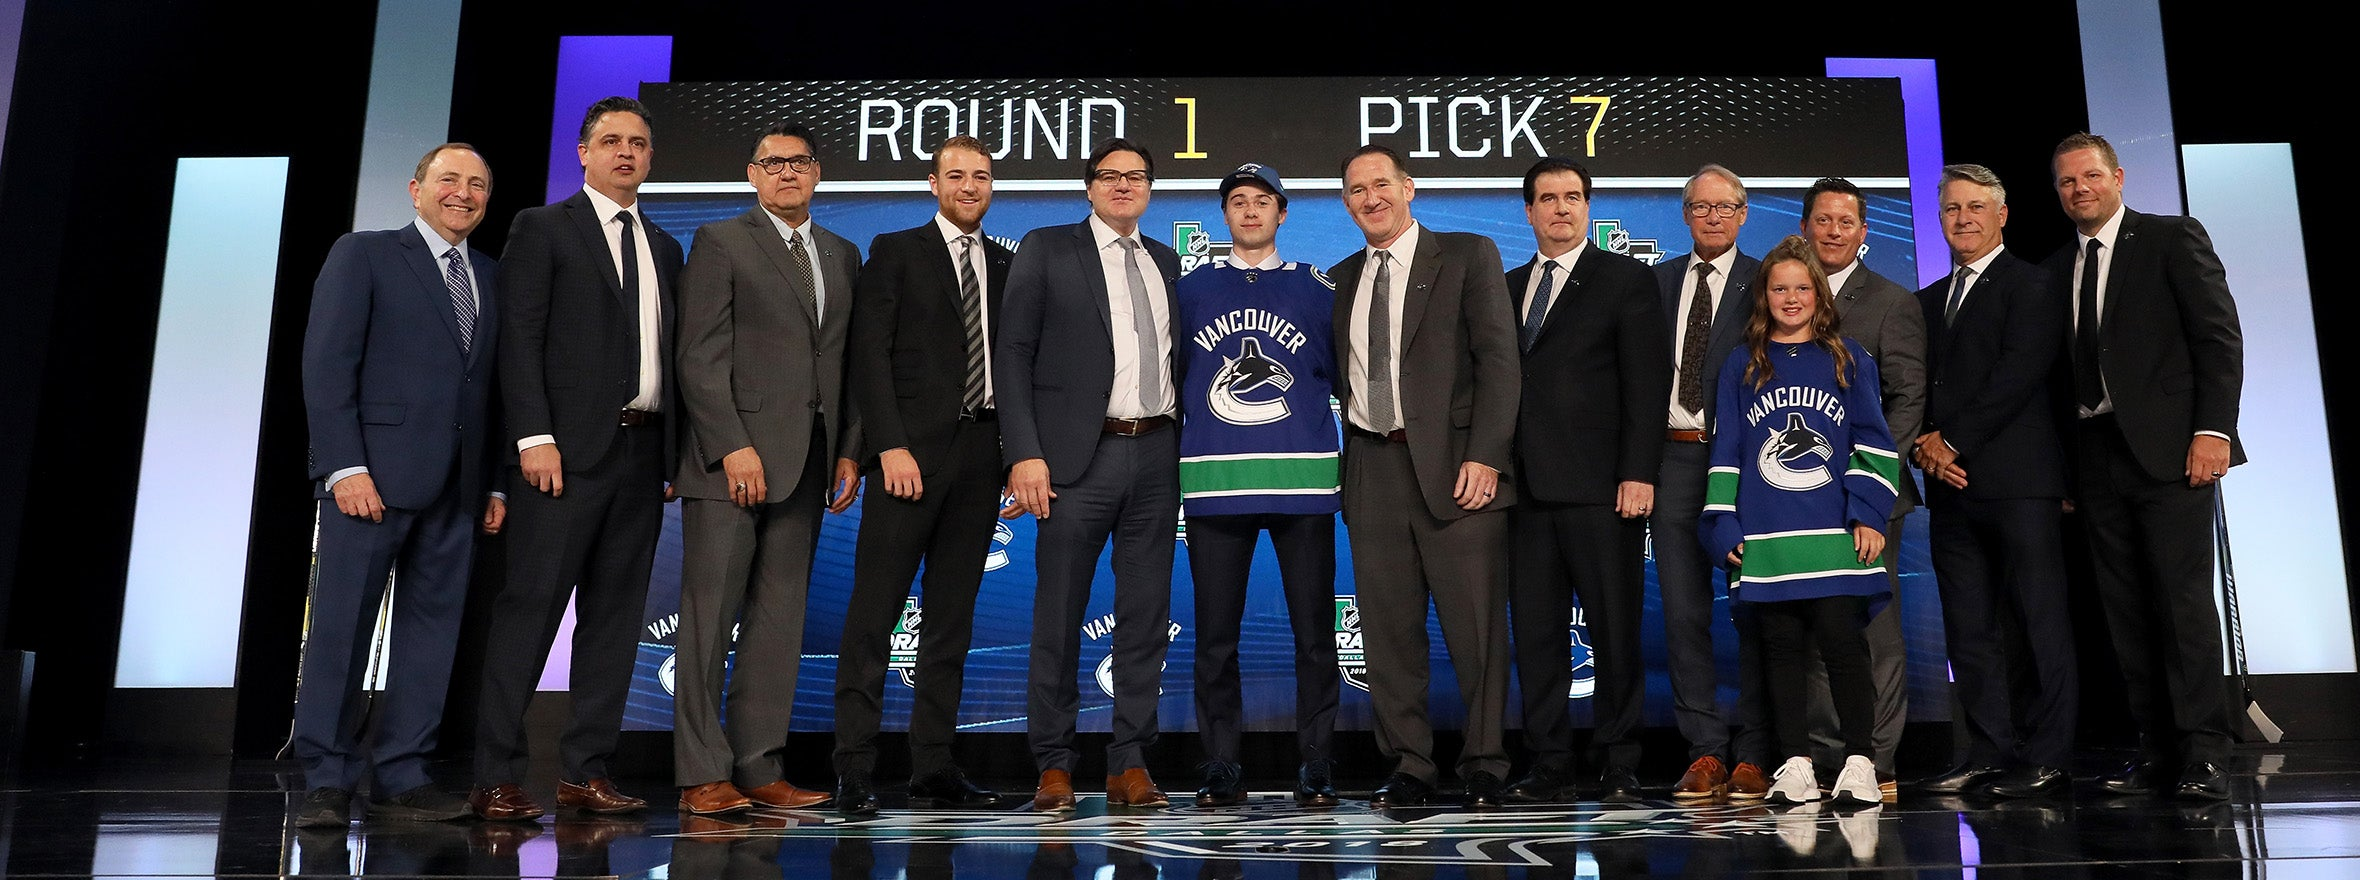 GET TO KNOW THE 2018 CANUCKS DRAFT PICKS